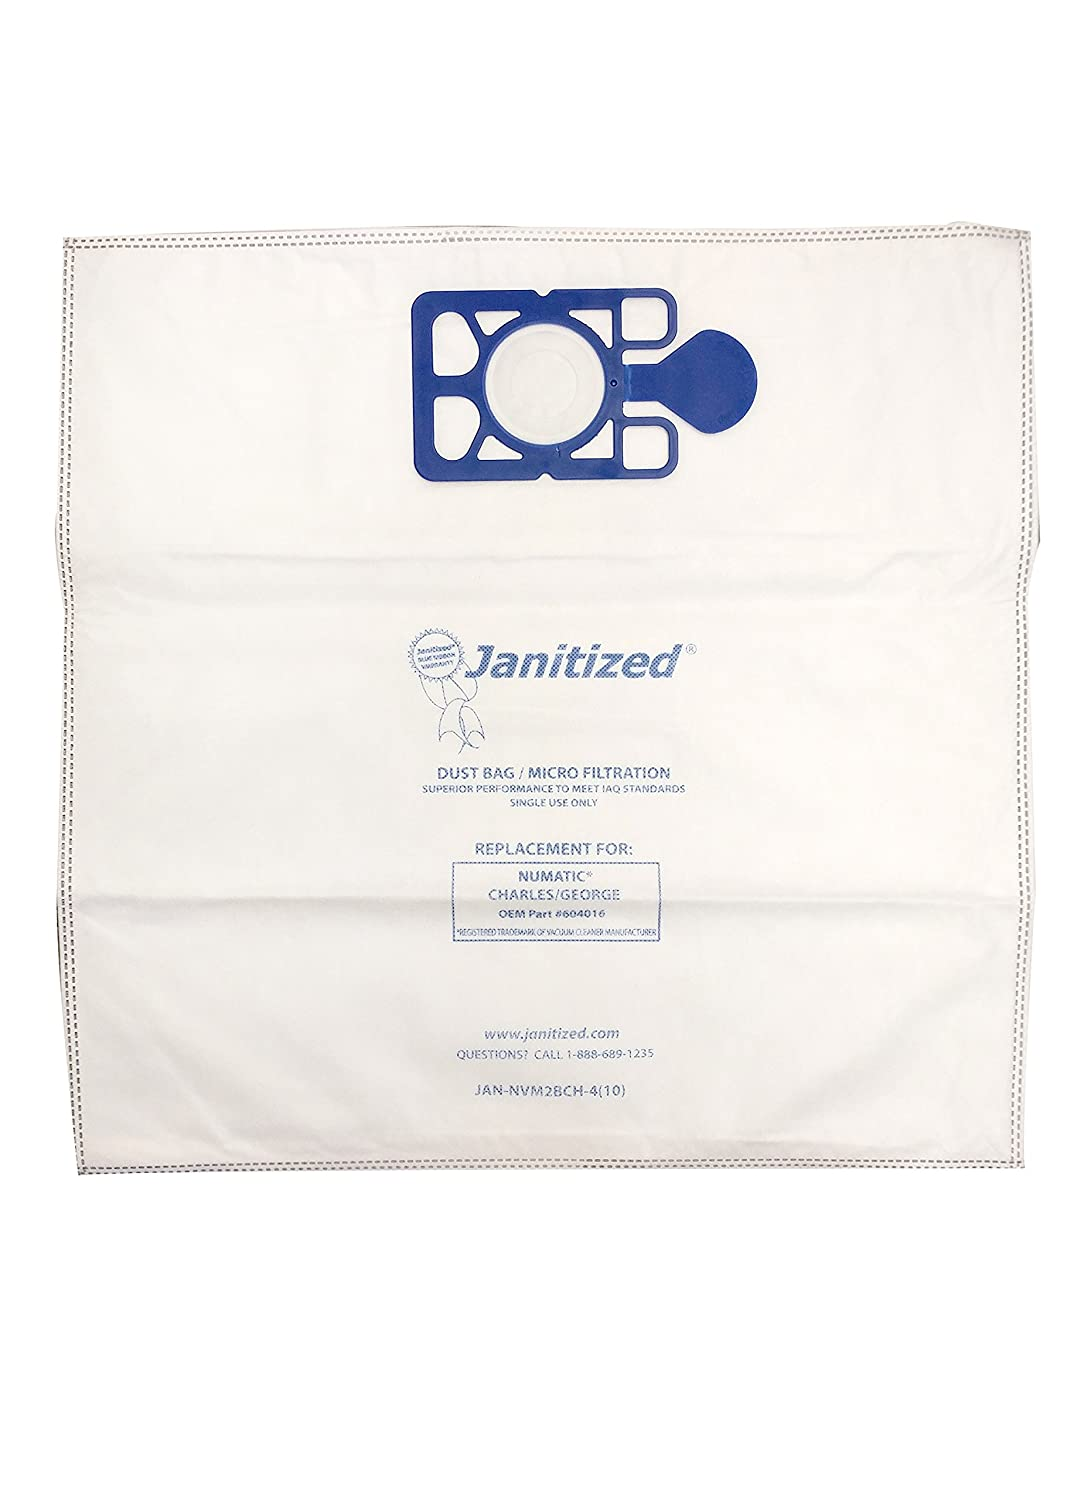 Janitized JAN-NVM2BCH-4(10) High Efficiency Premium Replacement Commercial Vacuum Bag for Nacecare and Numatic Charles/George, 300 Series Vacuum Cleaners, OEM#604016 (Pack of 10)